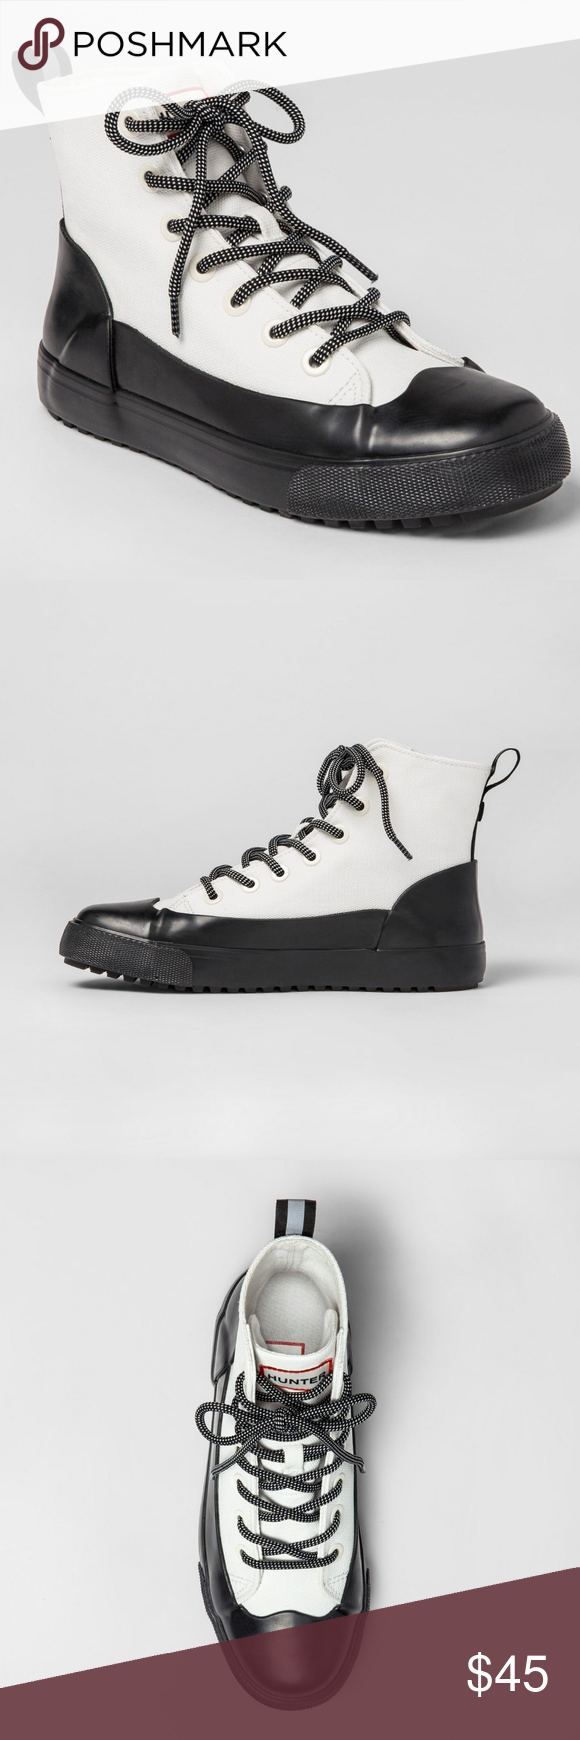 e68ef11bbc2 HUNTER Target White Black Hightop Sneakers 7.5 9.5 New without tags. The  insole has been marked so prevent retail return. Mens 7.5